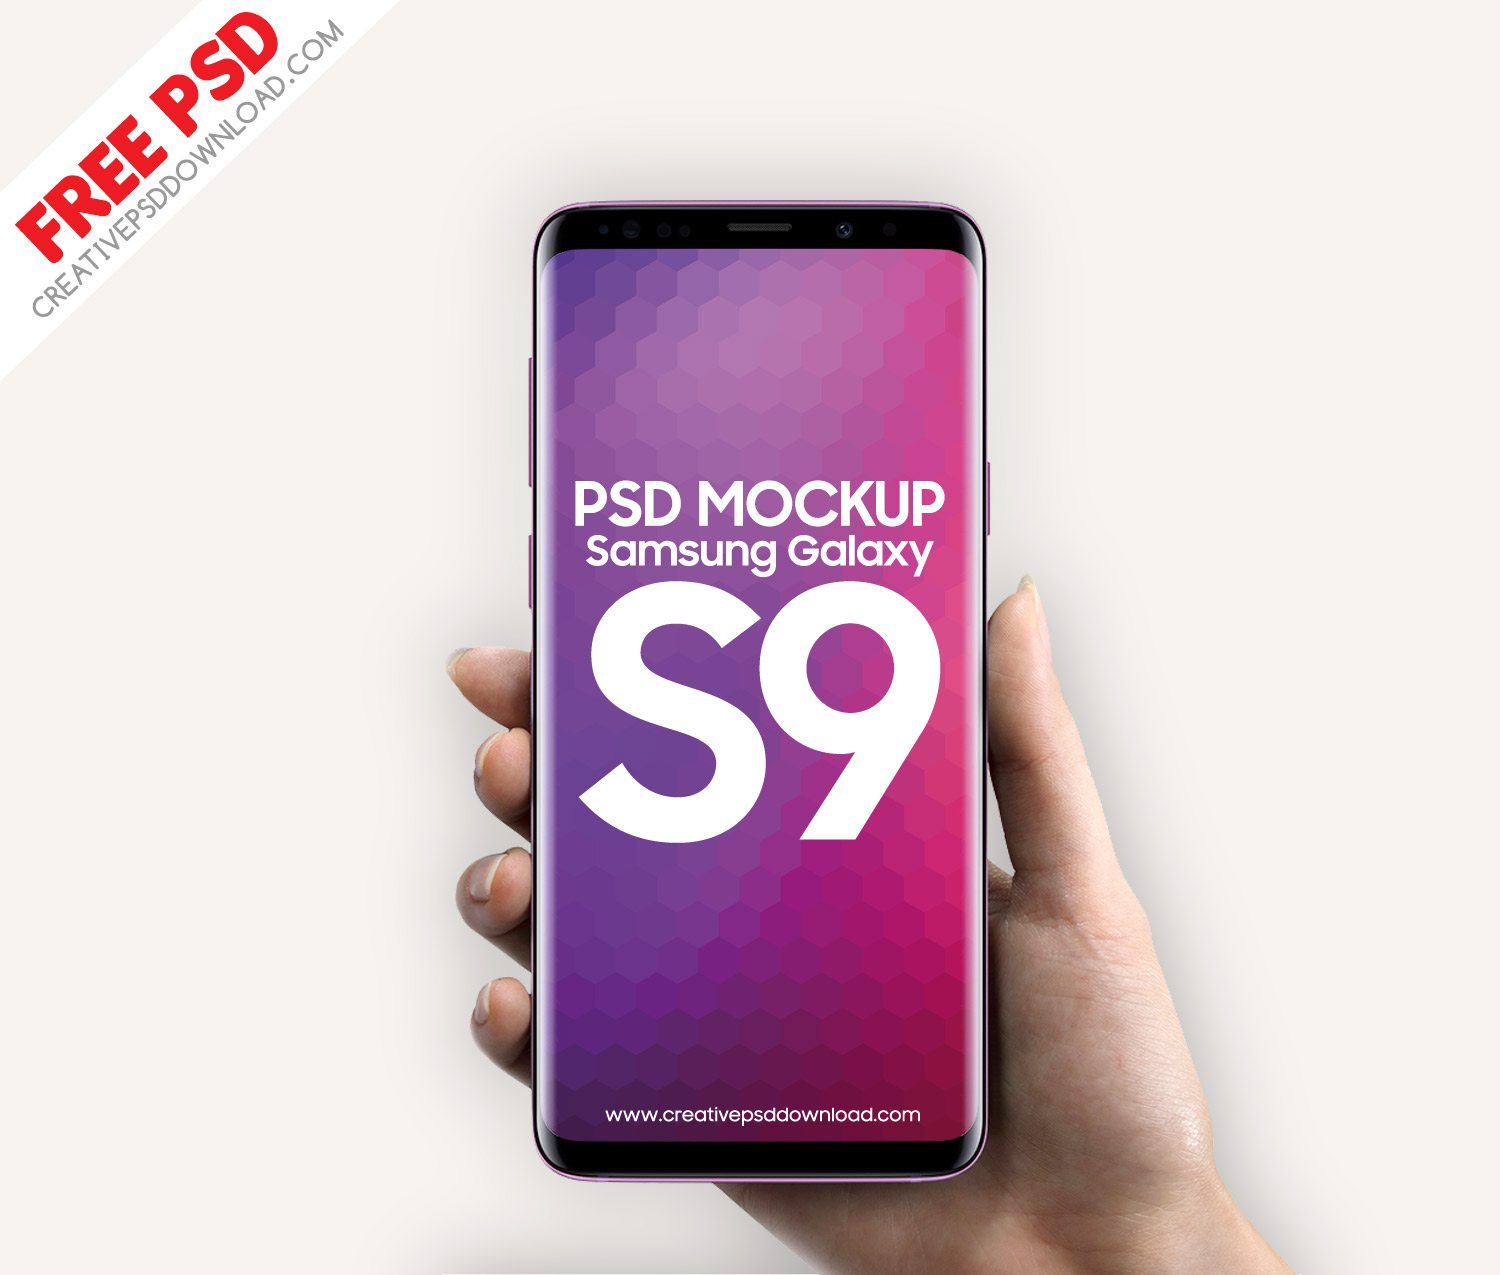 android mockup psd,free mockup,galaxy s7 mockup,galaxy s9 phone mockup,iphone app mockup,iphone mockup,iphone mockup free,mobile mockup,mobile mockup psd,mockup,mockup iphone,phone mockup,samsung galaxy mockup,samsung galaxy s7 mockup,samsung galaxy s7 psd,samsung mockup,samsung s7 mockup,smartphone mockup,samsung galaxy s9 mockup,galaxy s9 mockup psd,free mockup psd,s9 mockup,s9,samsung galaxy s9 mockup psd,psd,mockup psd,psd daddy,daddy psd,freebie,psdfreebies,psd freebies,graphics,download psd,,free,galaxy mockup,galaxy s9,samsung,samsung phone mockup,mockups,creative psd,download psd,free psd,free psd mockup,galaxy s9,phone mockup,s9,s9 psd mockup,samsung galaxy s9 and s9+,samsung galaxy s9 front & back free psd mockup,samsung s9 mockup,Samsung Galaxy S9 In Hand PSD Mockup